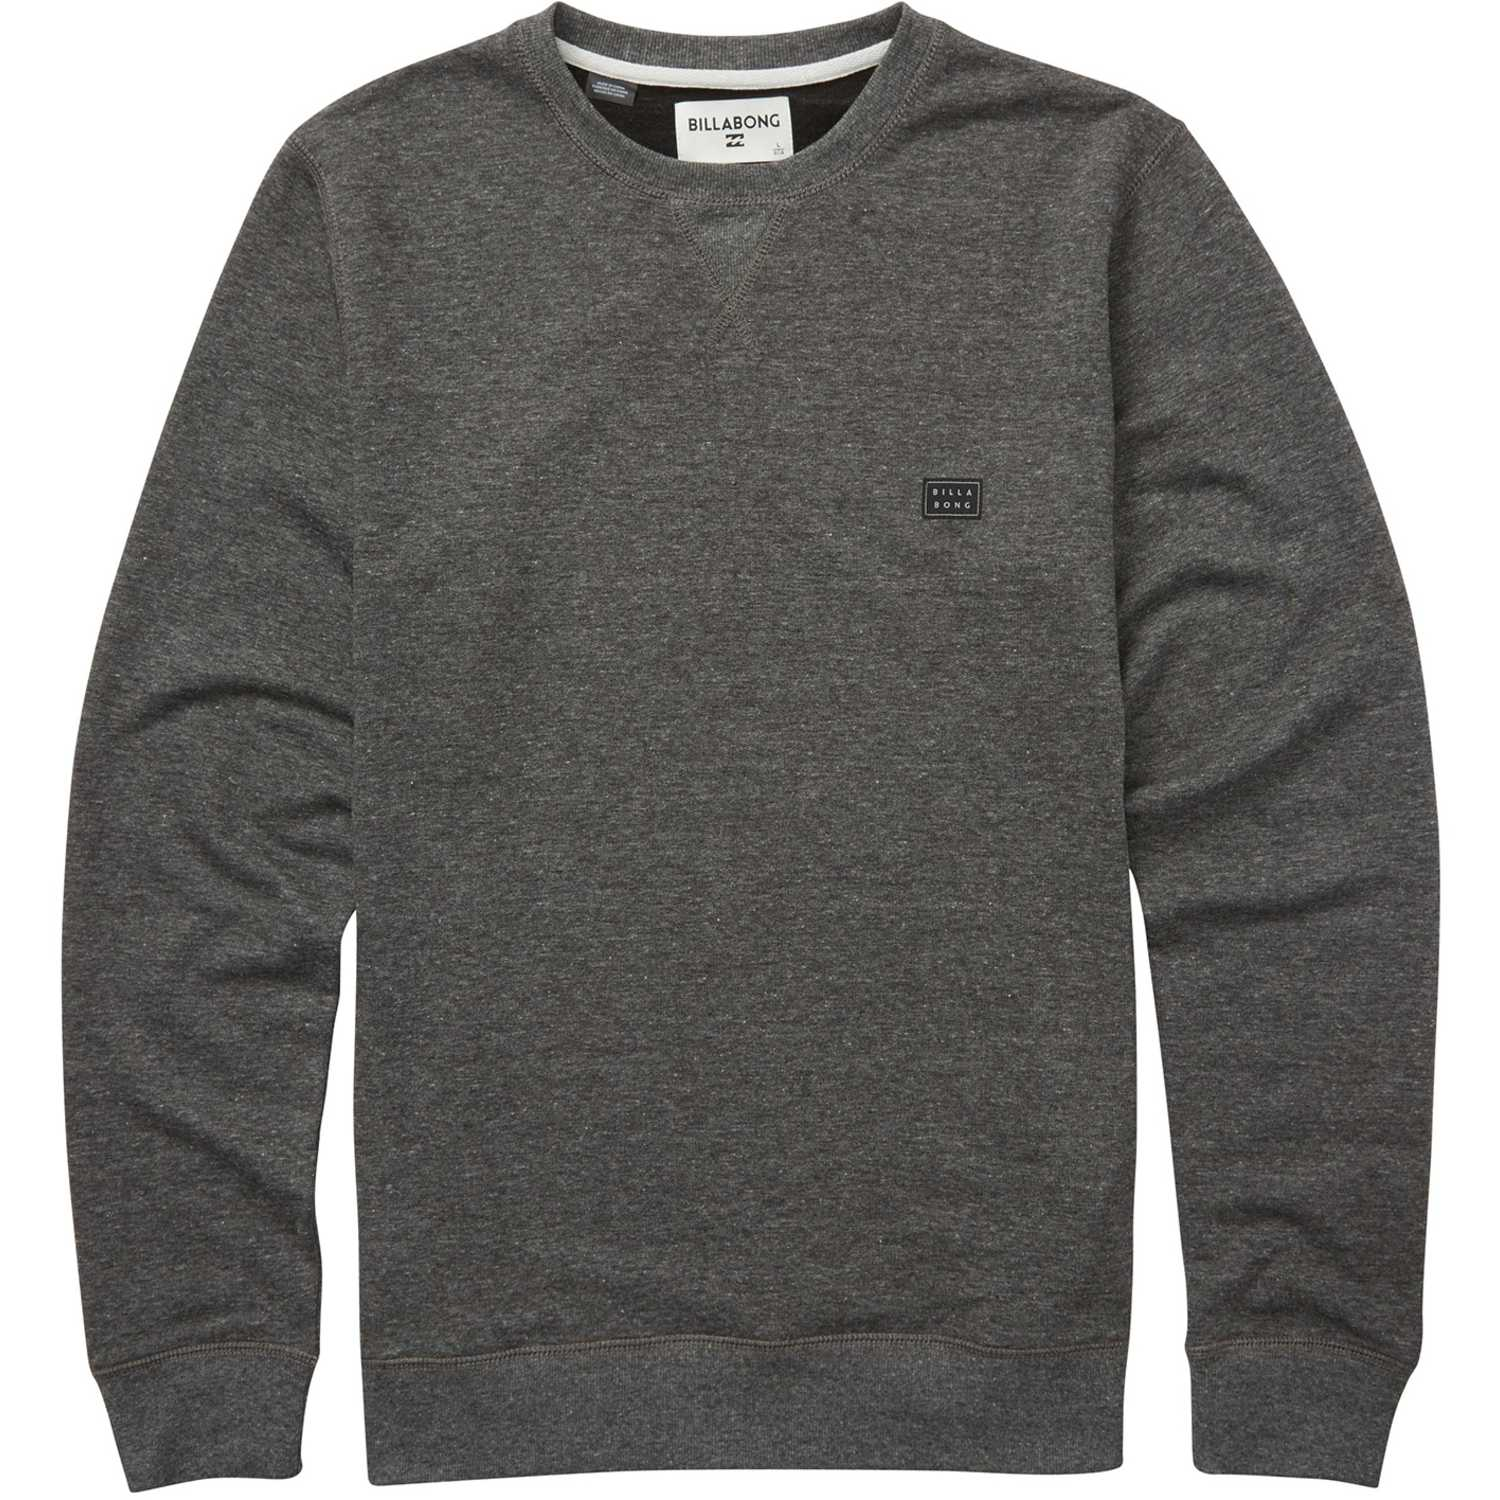 Billabong all day crew Negro Hoodies y Sweaters Fashion